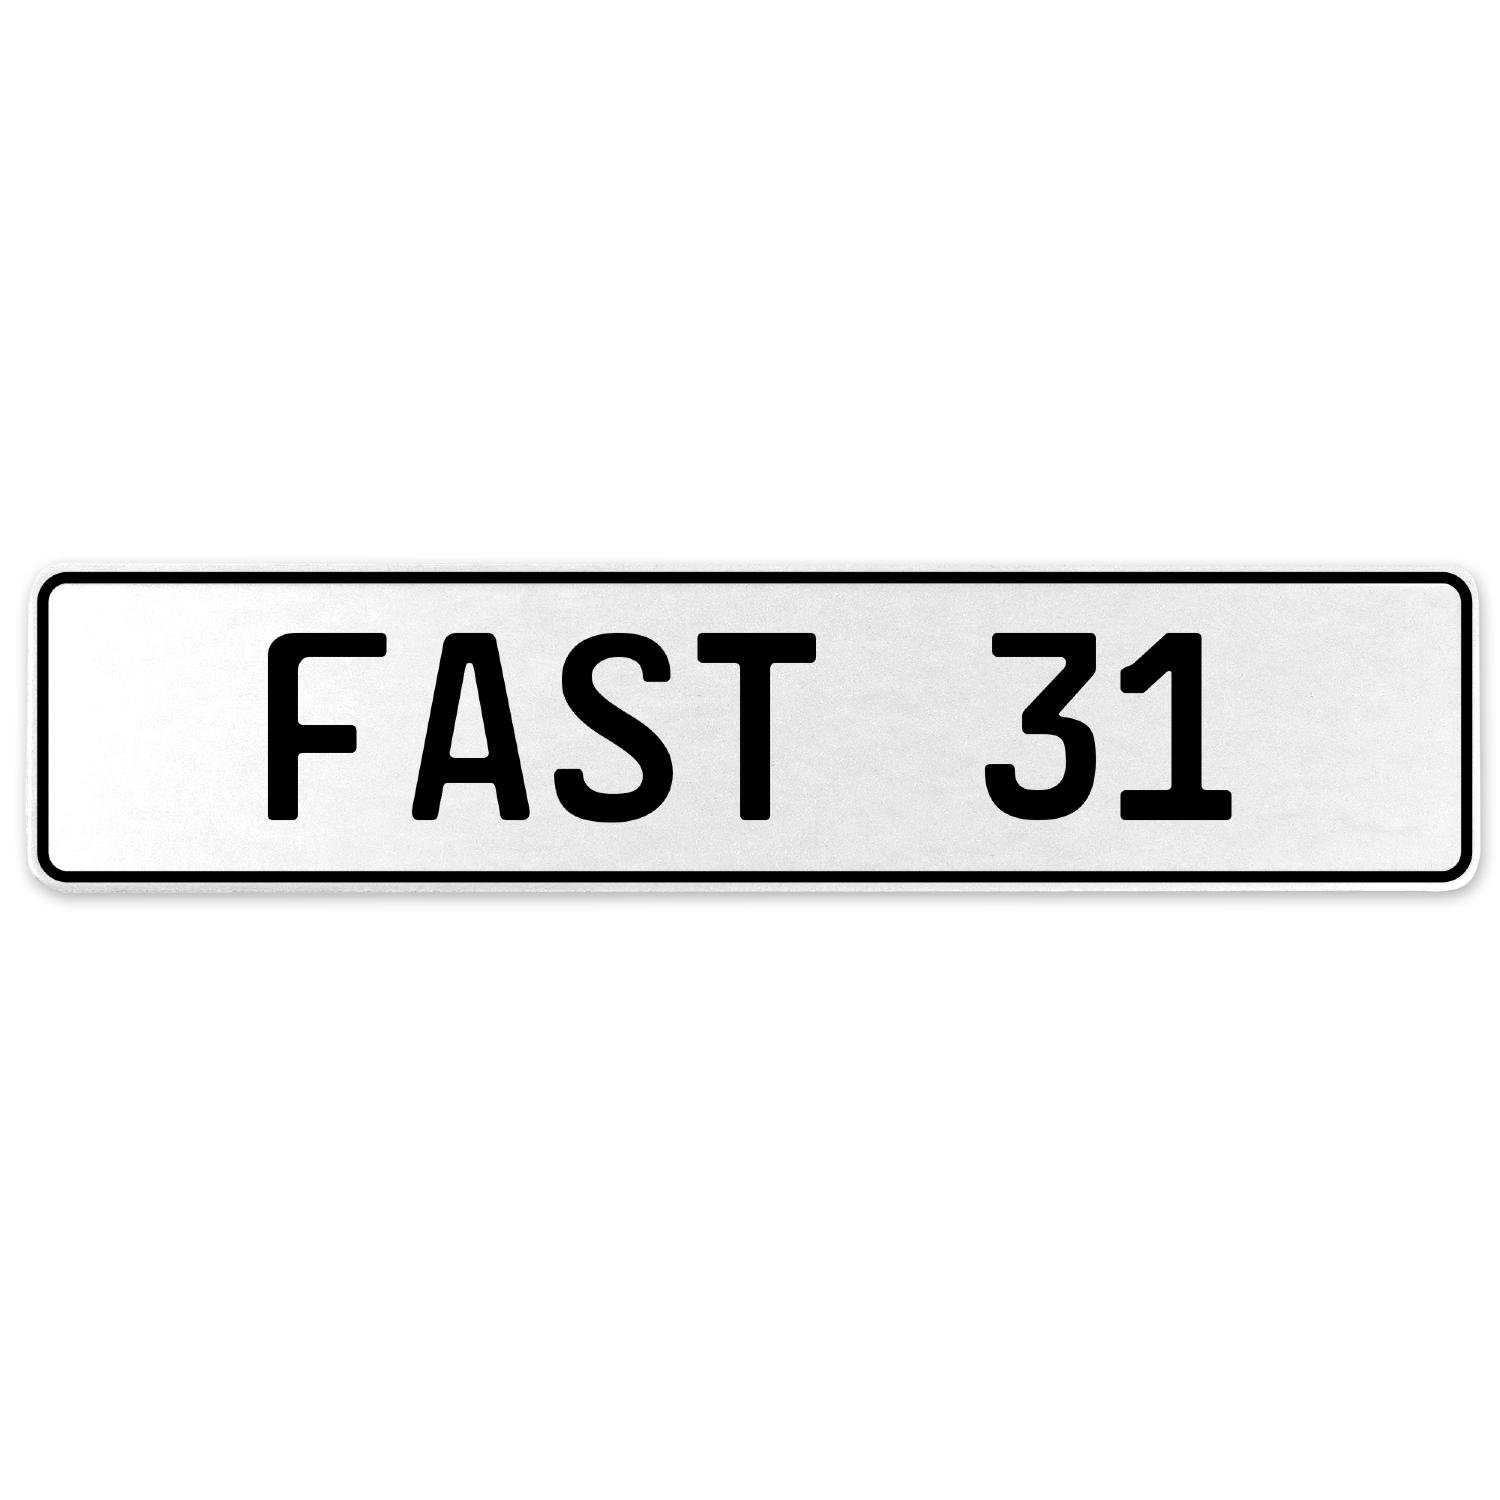 Vintage Parts 557301 Fast 31 White Stamped Aluminum European License Plate